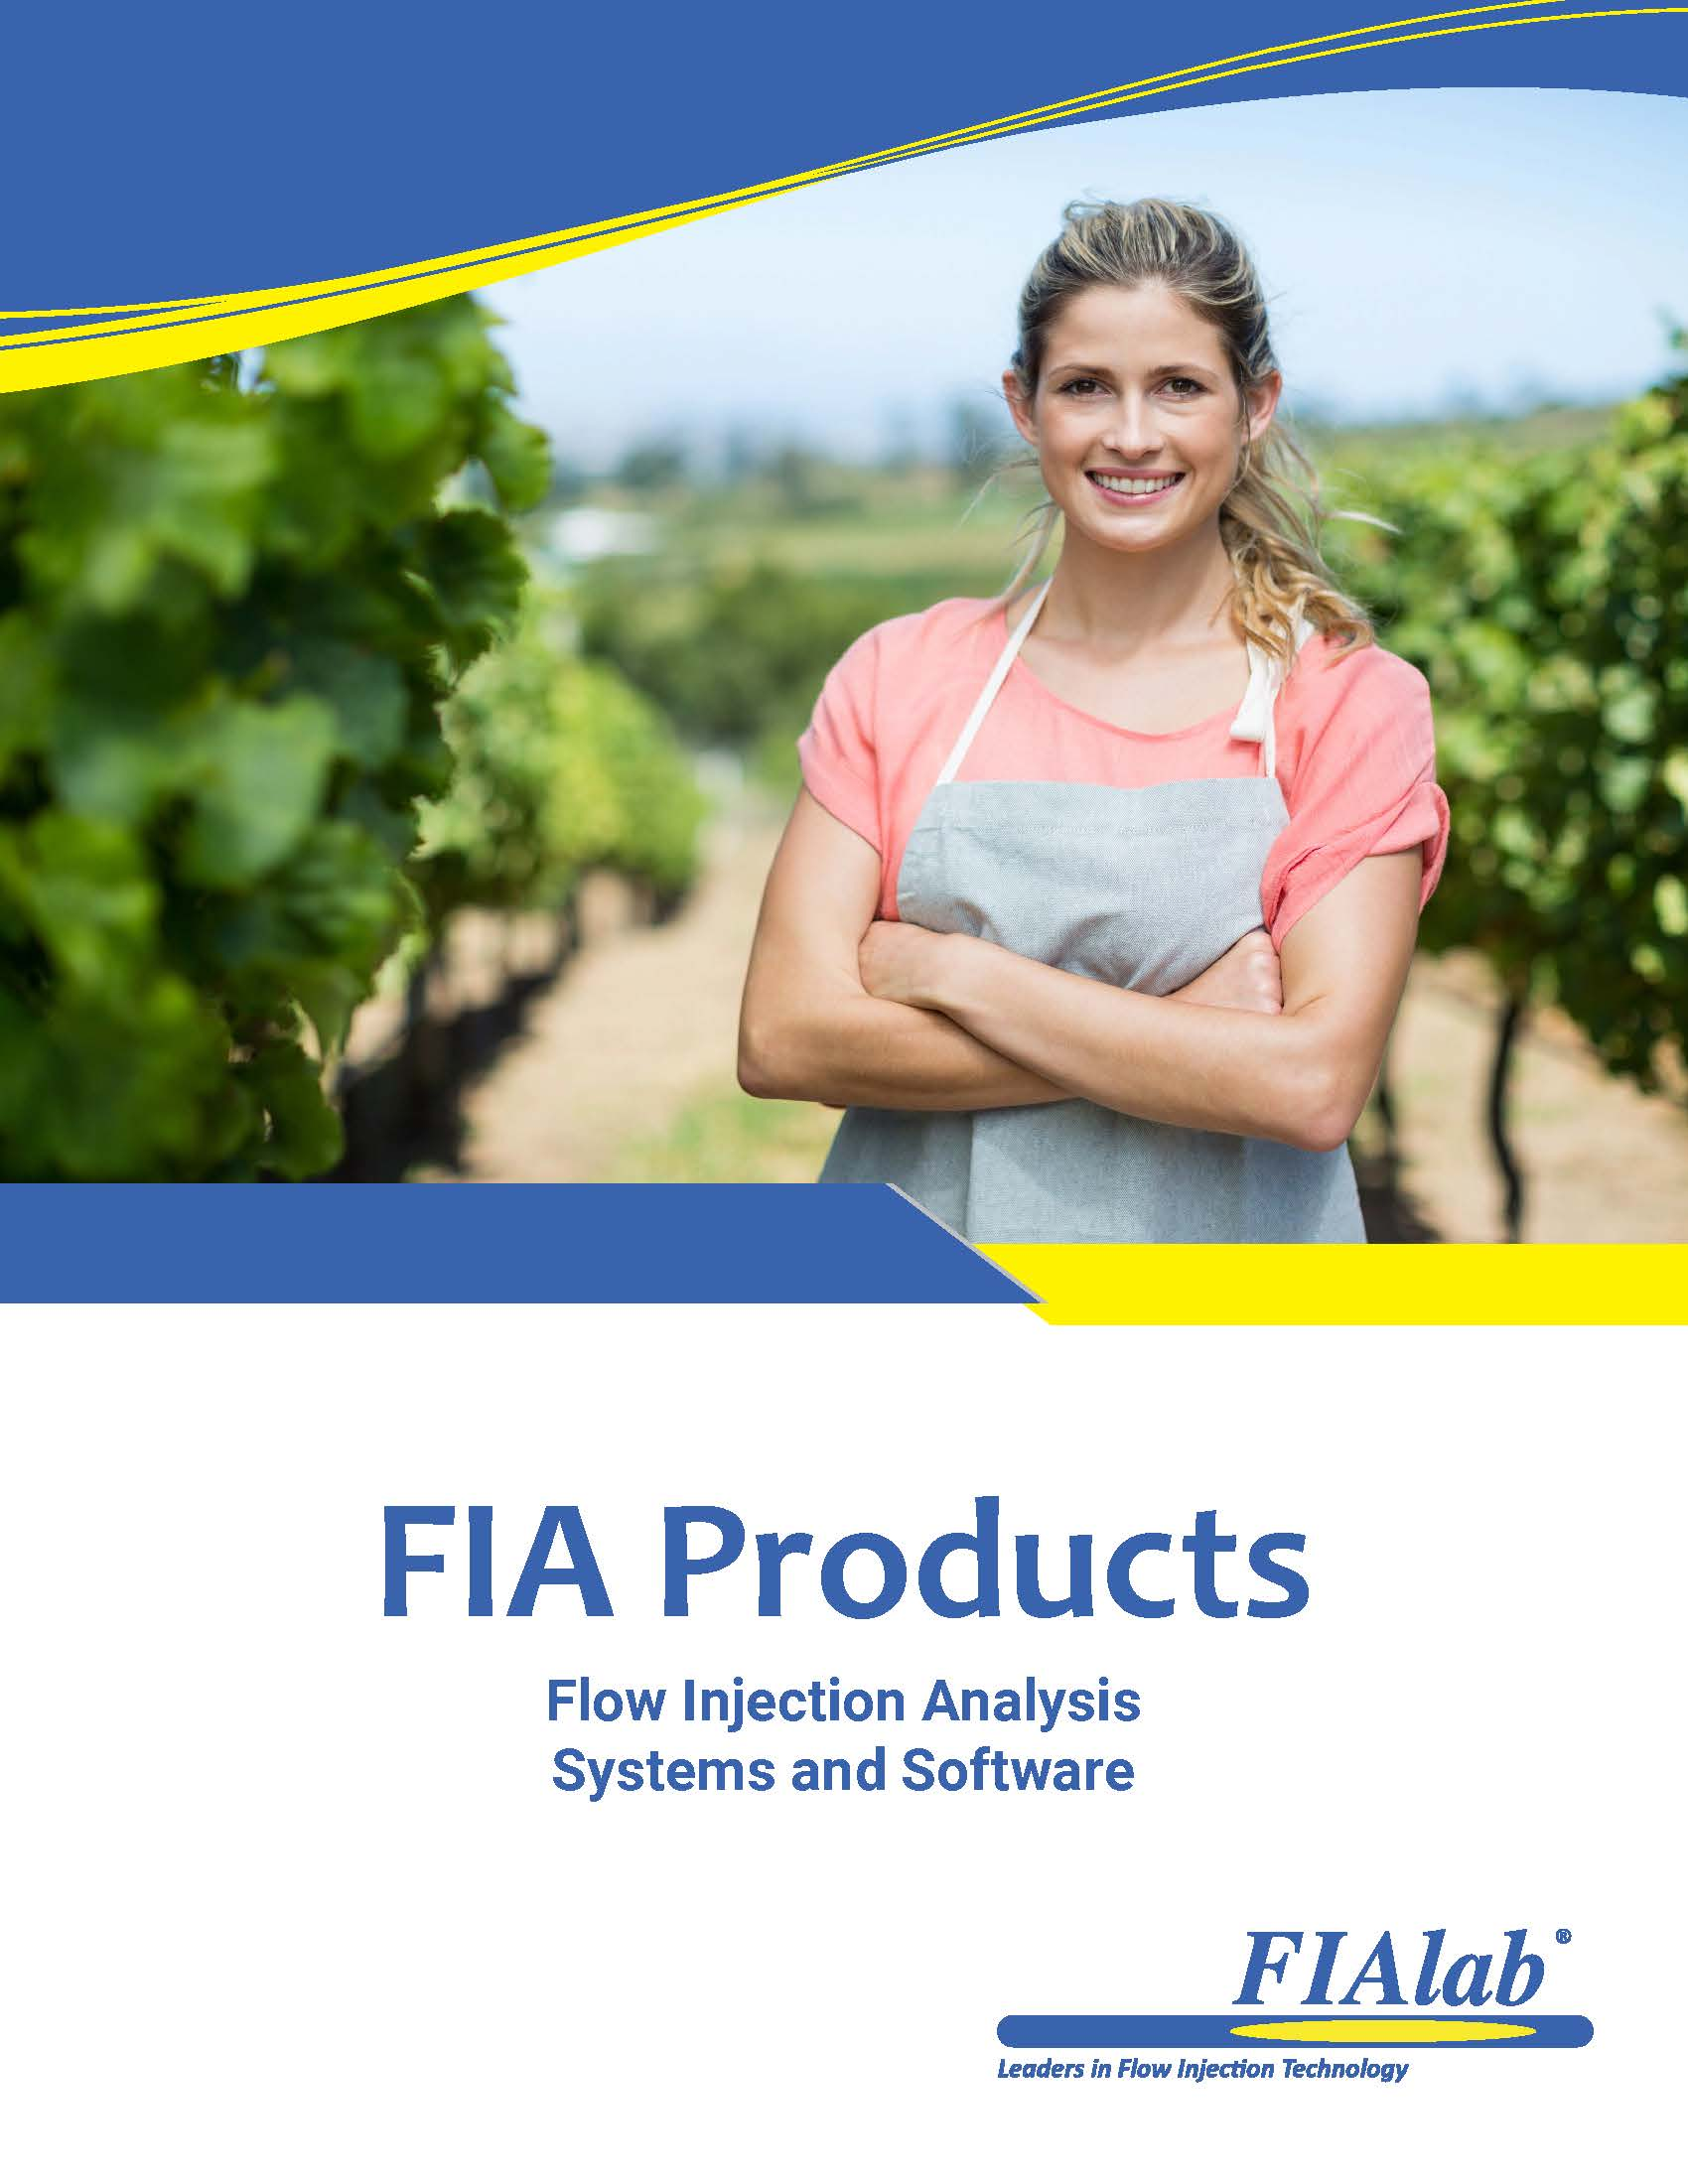 FIAlab Brochure Cover